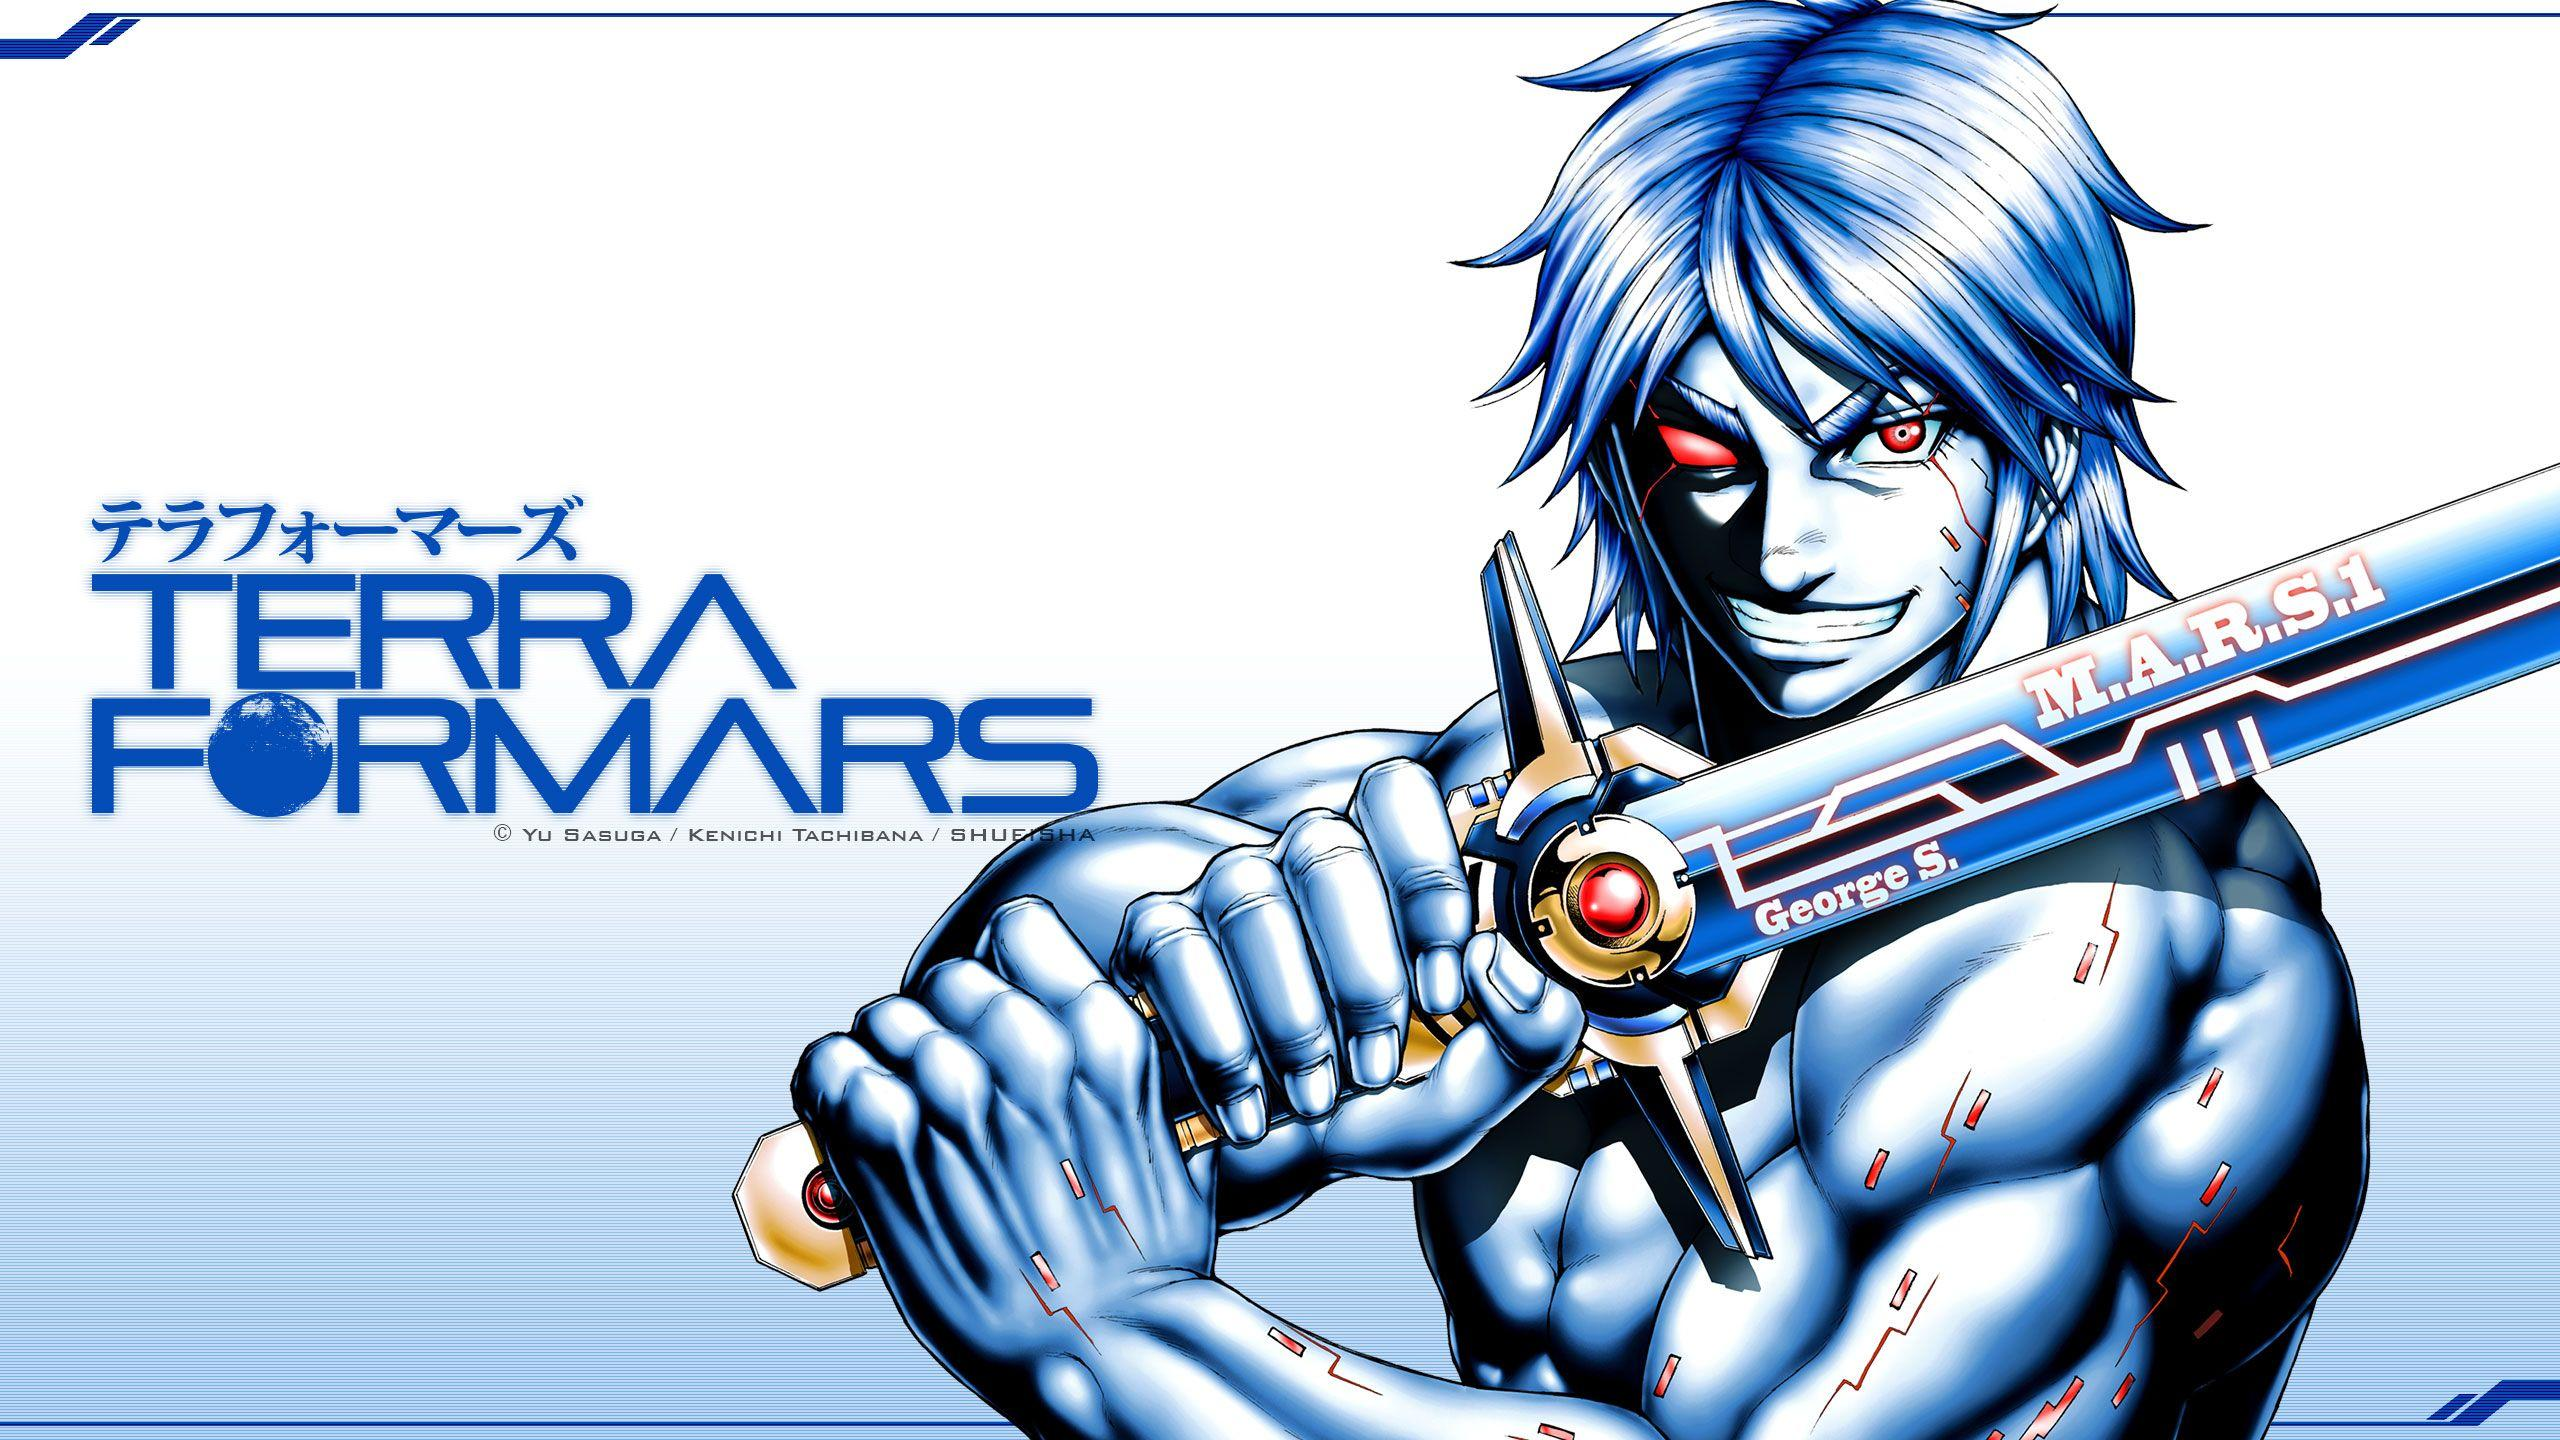 Terra Formars Wallpapers Wallpaper Cave